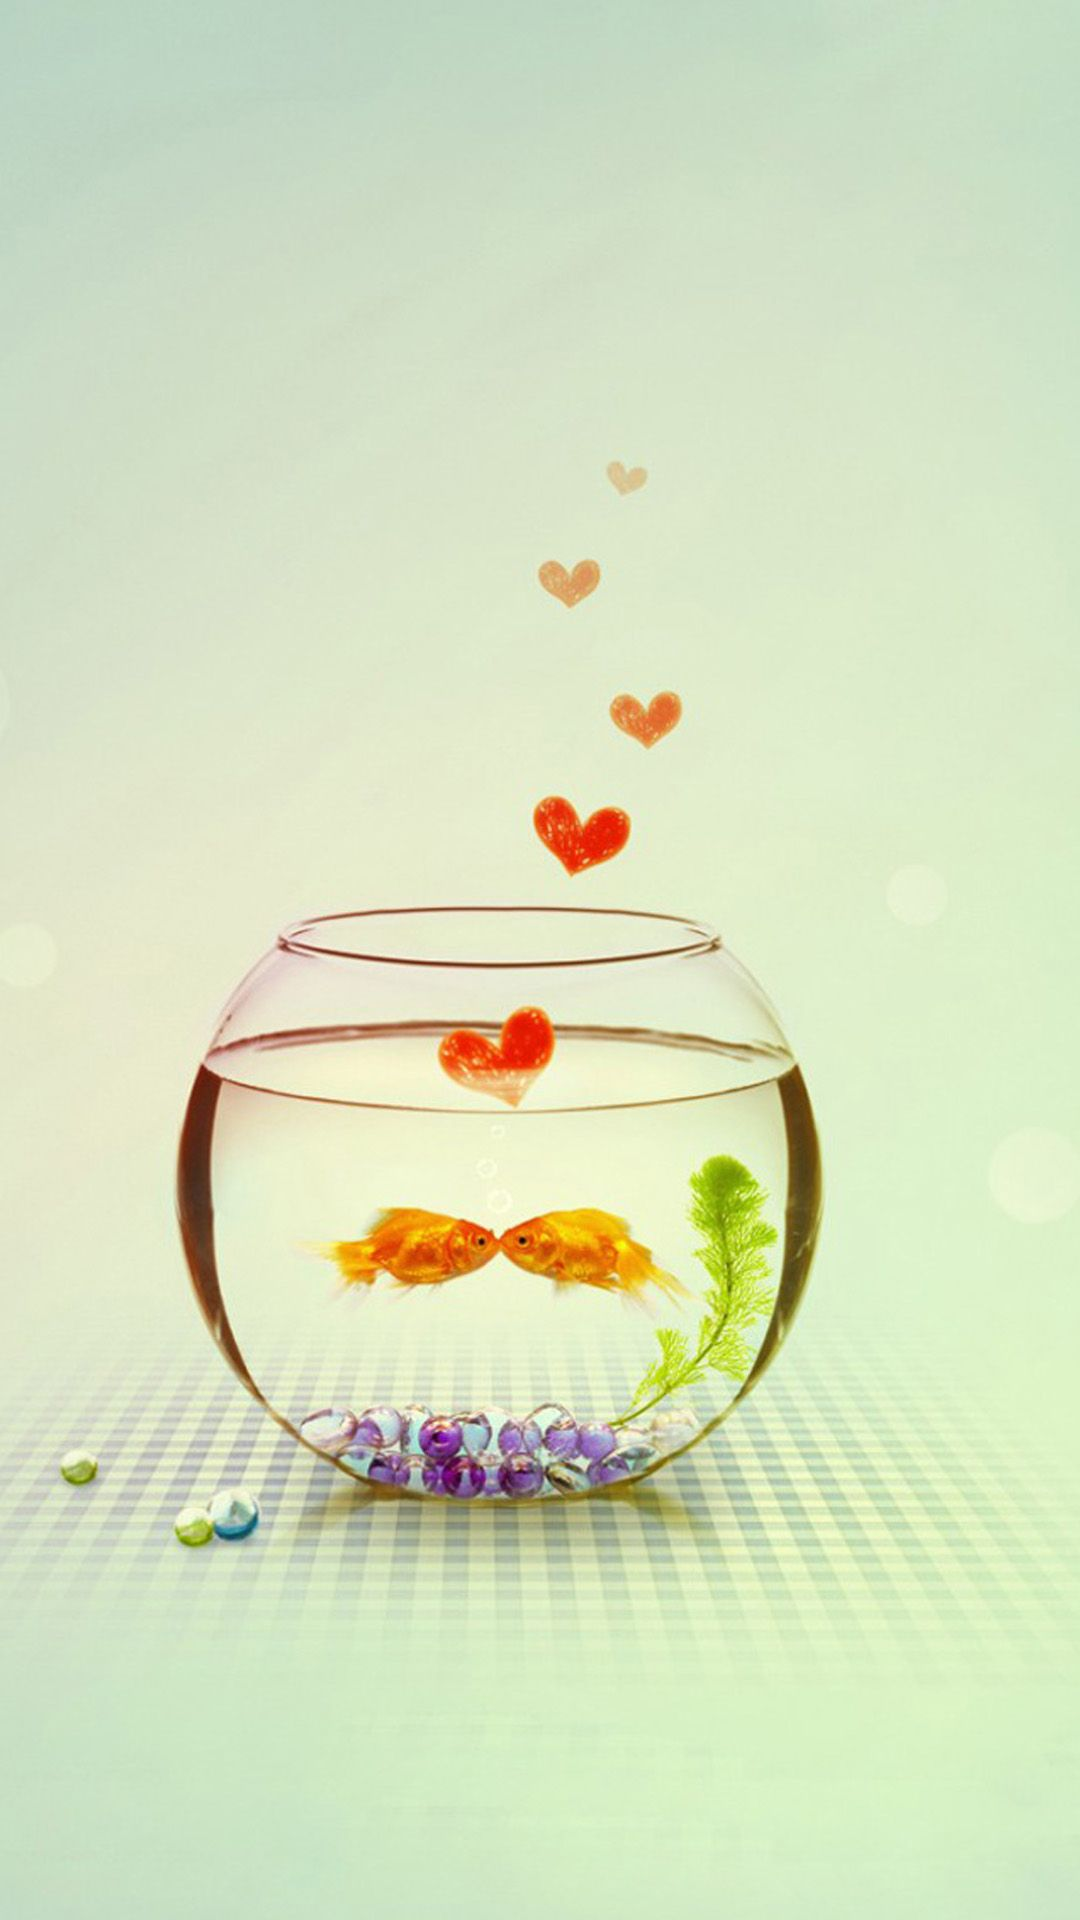 Wallpaper iphone cute love - Kissing Love Fish Couple In Aquarium Iphone 7 Wallpaper